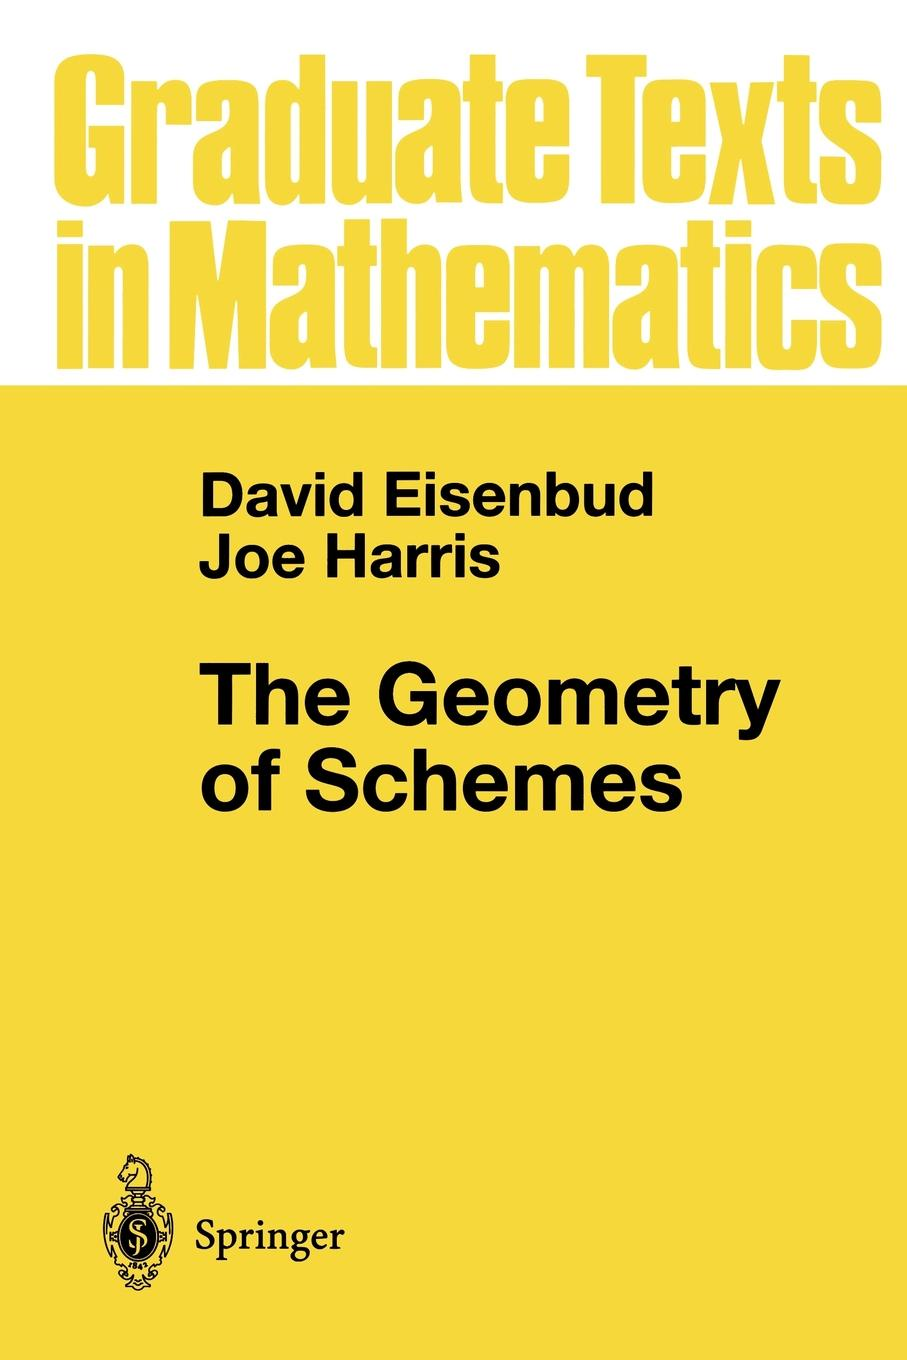 David Eisenbud, Joe Harris The Geometry of Schemes